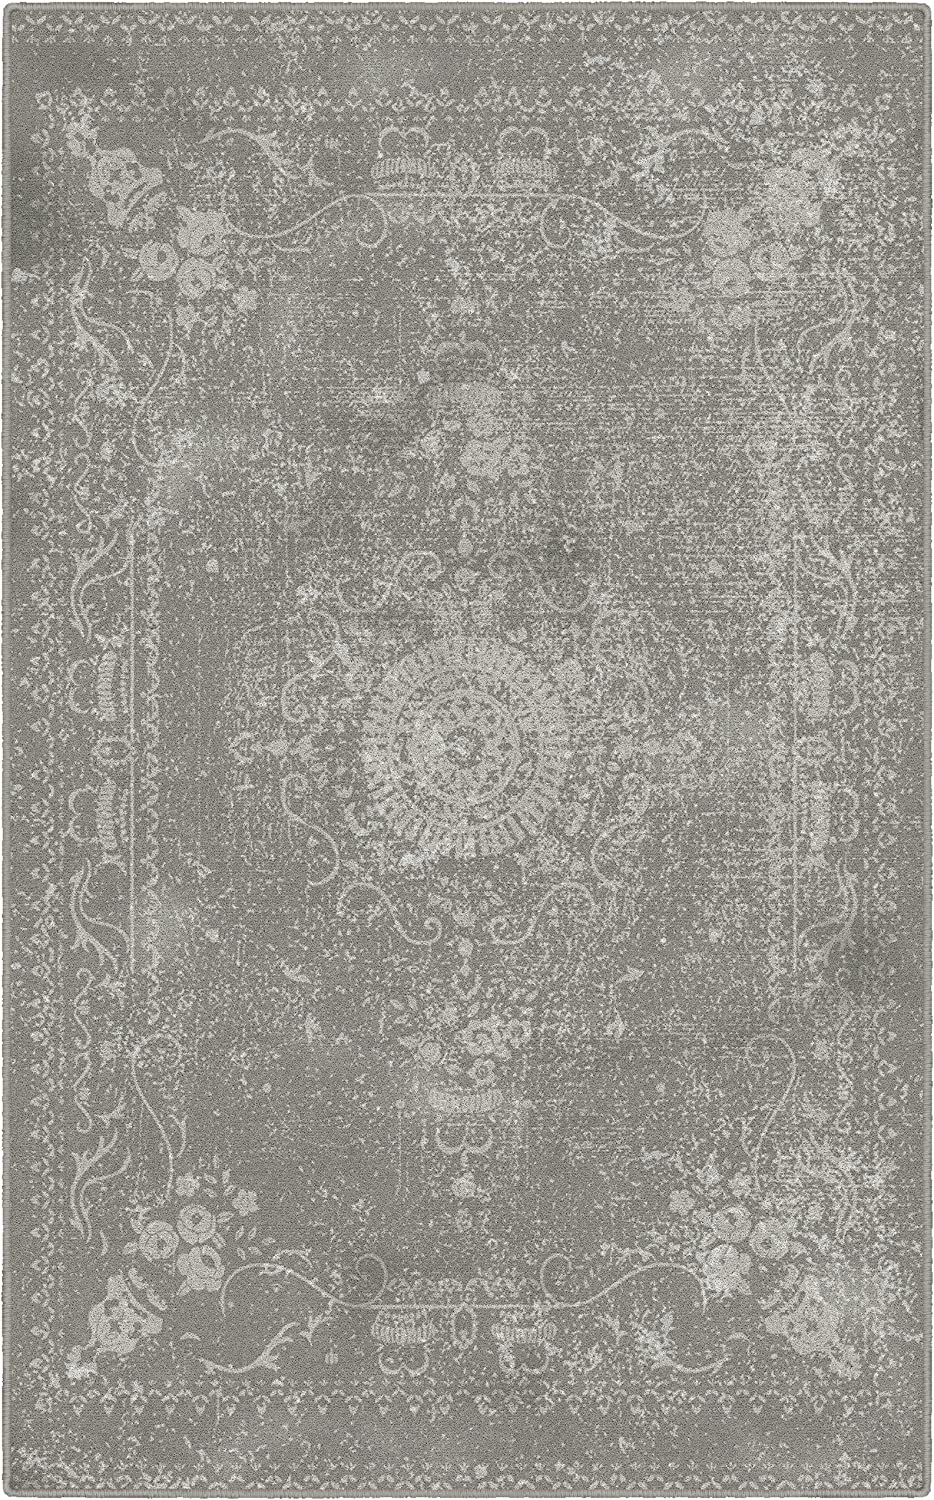 Brumlow Mills Neutral Home Indoor Area Rug with Distressed Persian Print Pattern for Living Room Decor, Dining Room, Kitchen Rug, or Bedroom, 2'6